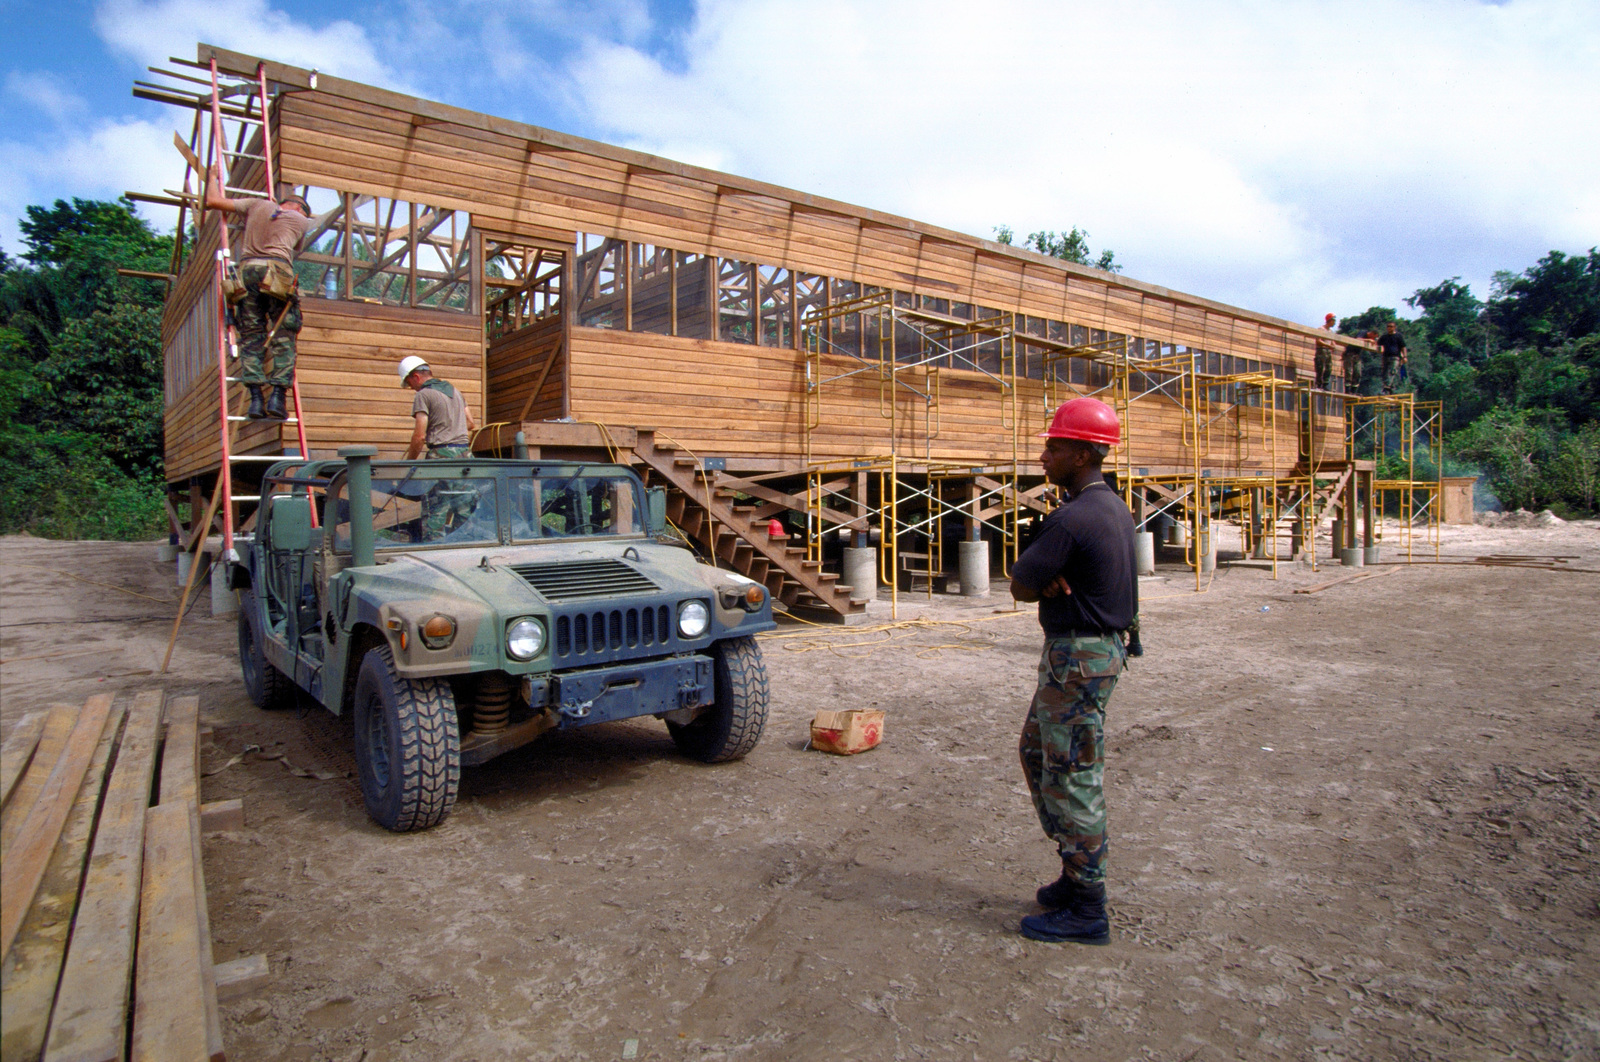 Members of the 820th Red Horse Squadron, Nellis Air Force Base, Nevada and engineers from the 4th Battalion, Guyana Defense Force work together to build a new school for the Malali region of Guyana. The 820th is participating to support the first combined humanitarian and civic assistance exercise conducted between the United States and Guyana. Military personnel from Air Force, Air Force Reserve & National Guard, Army, Army National Guard and Marine Corps participated in the exercise which included engineering and medical readiness training